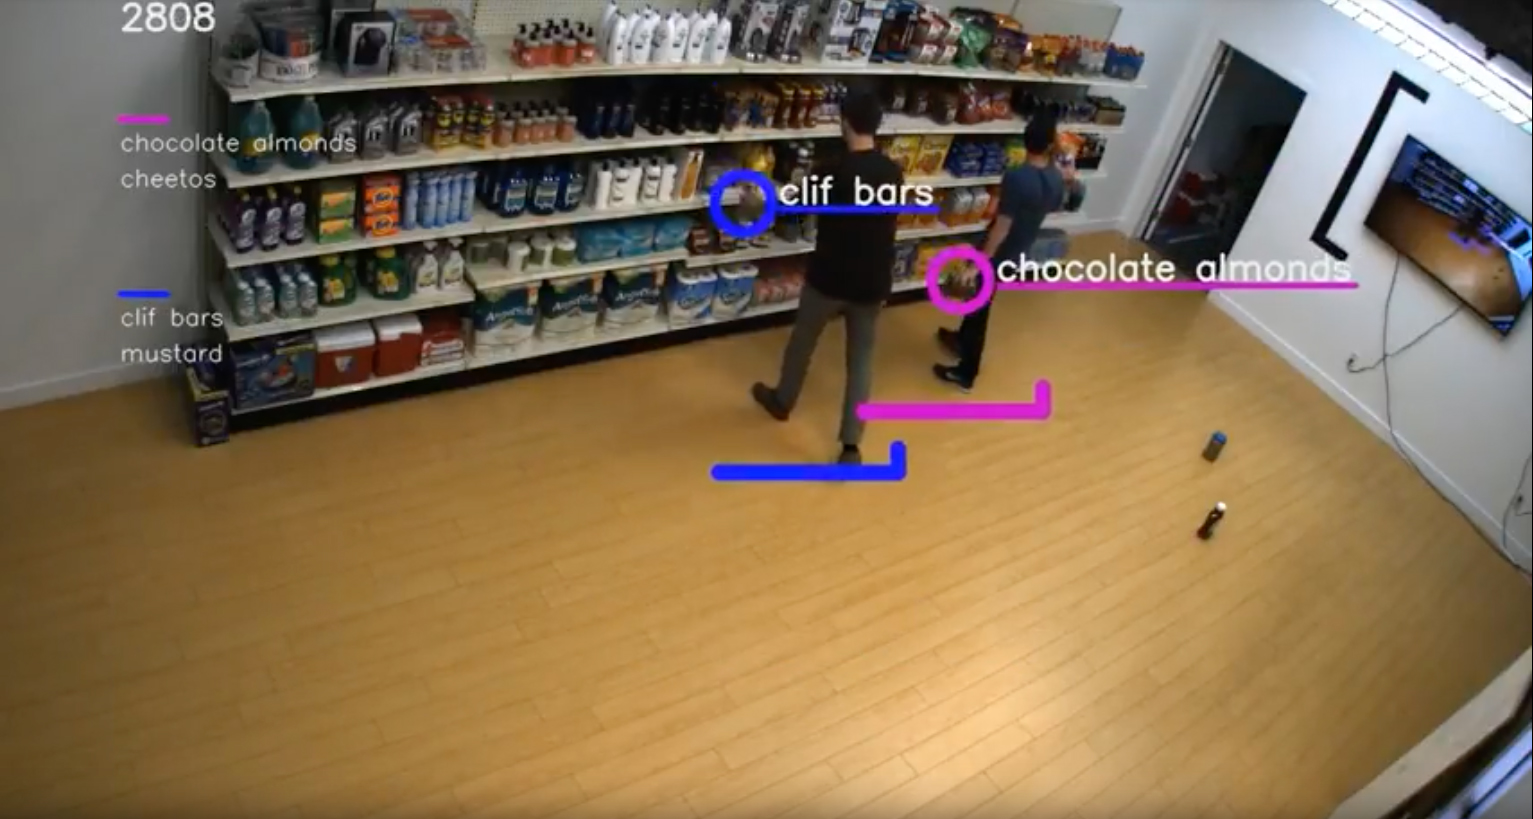 I Tried Shoplifting in a Store without Cashiers and Here's